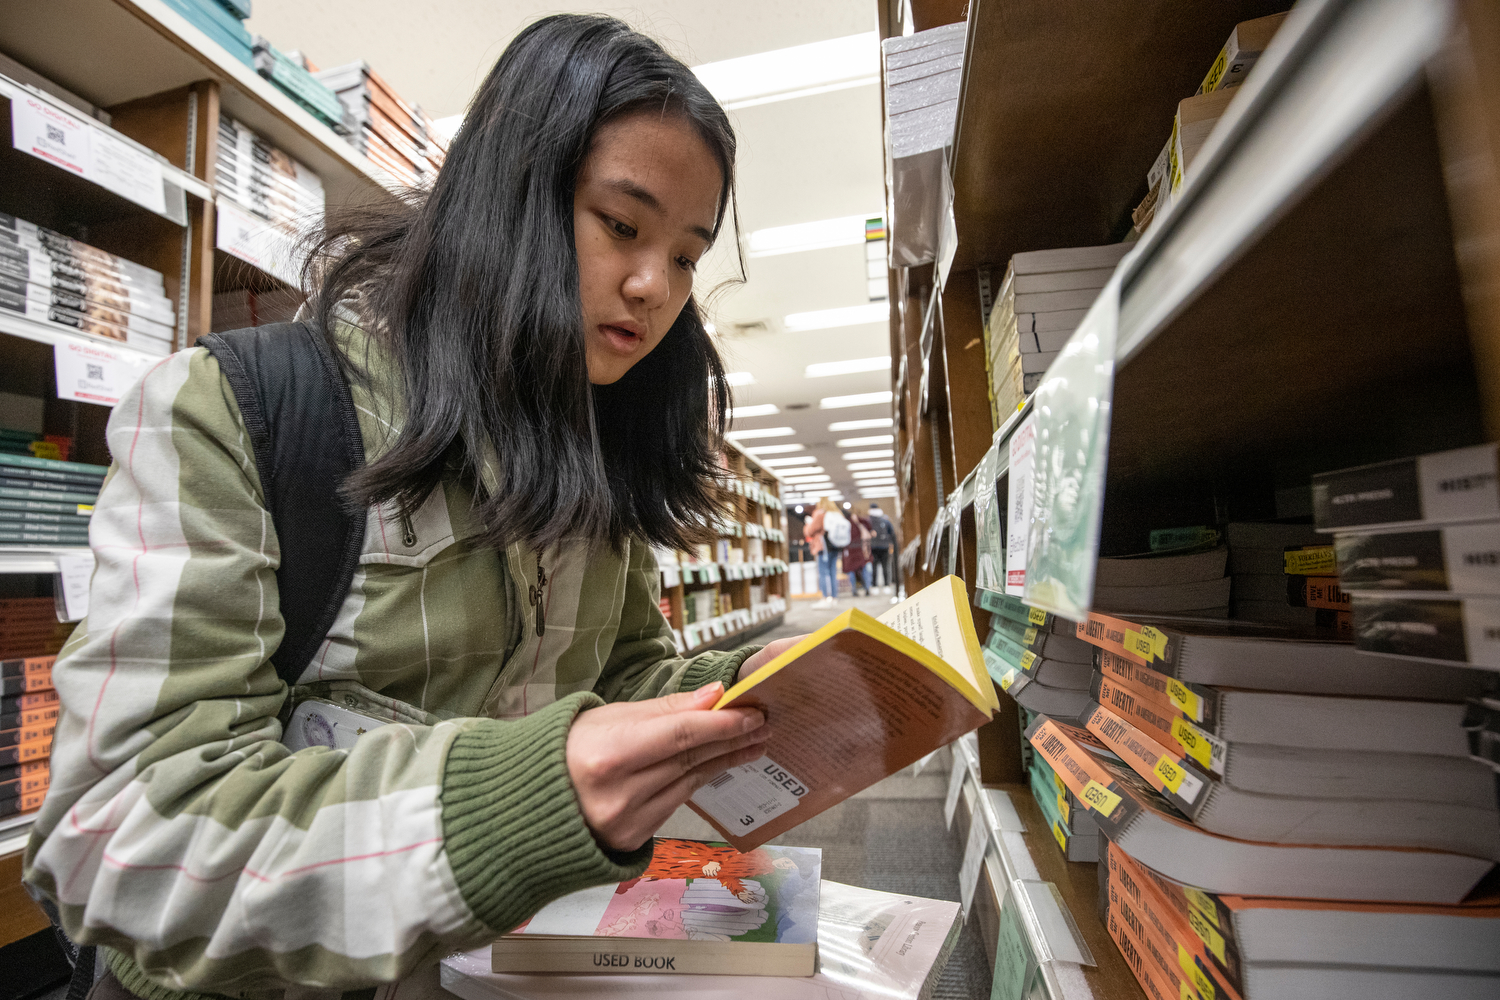 Transfer student Cathy Ouyang (EDU '22) looks at books for her history class at the bookstore in Student Center East during her first day on campus.